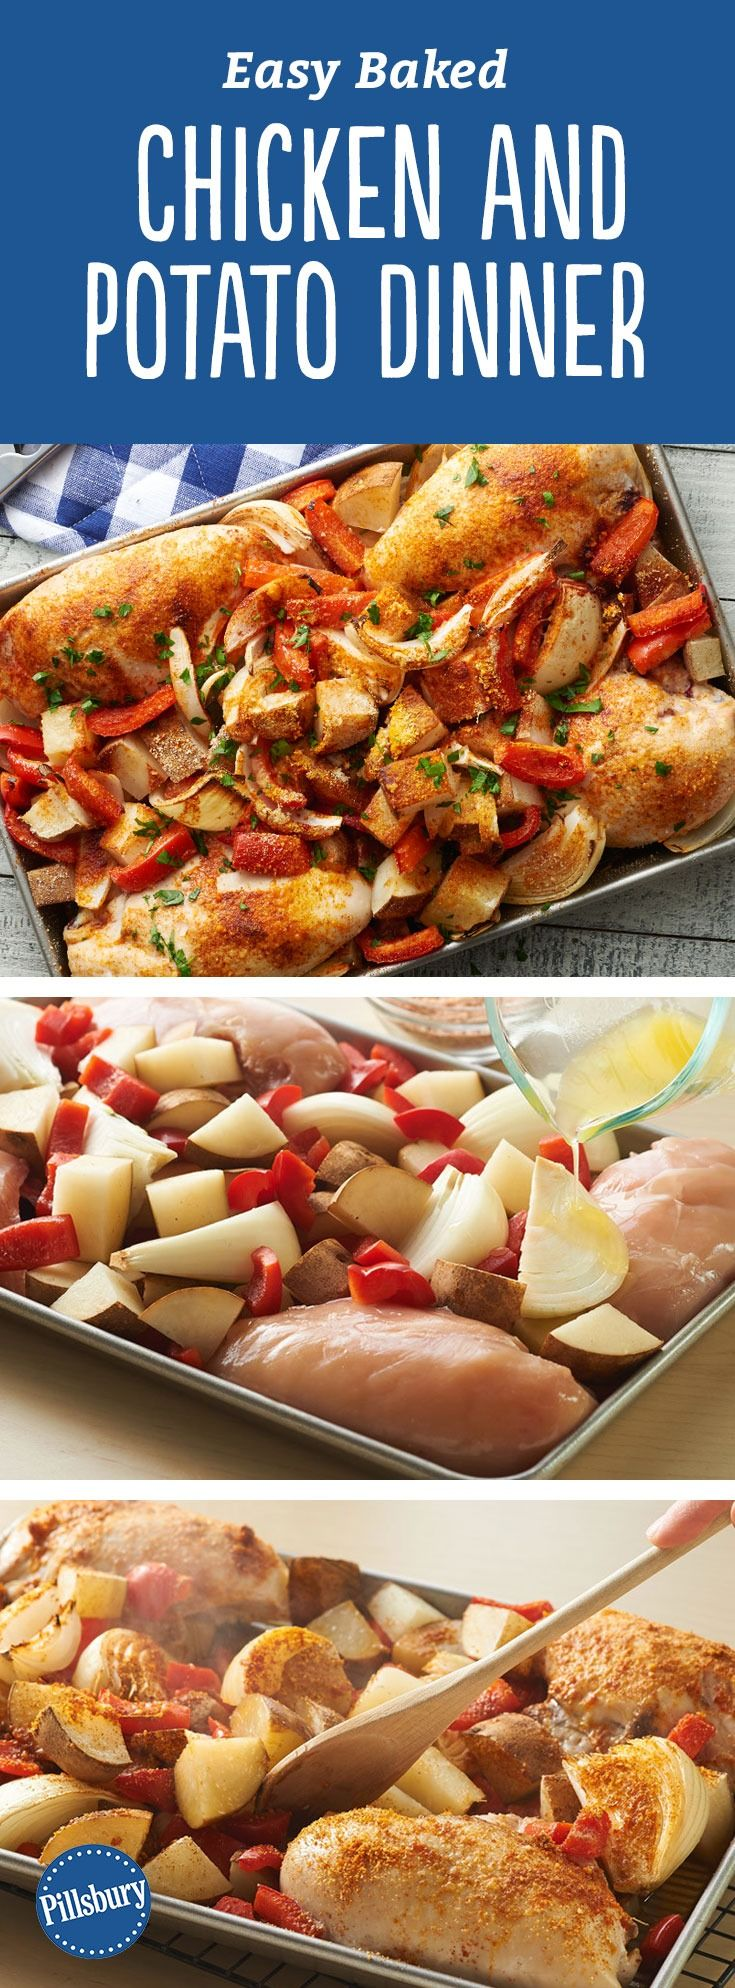 Easy Baked Chicken and Potato Dinner - Stress-free baked dinner ready in less than an hour! Enjoy this delicious chicken and potatoes meal.